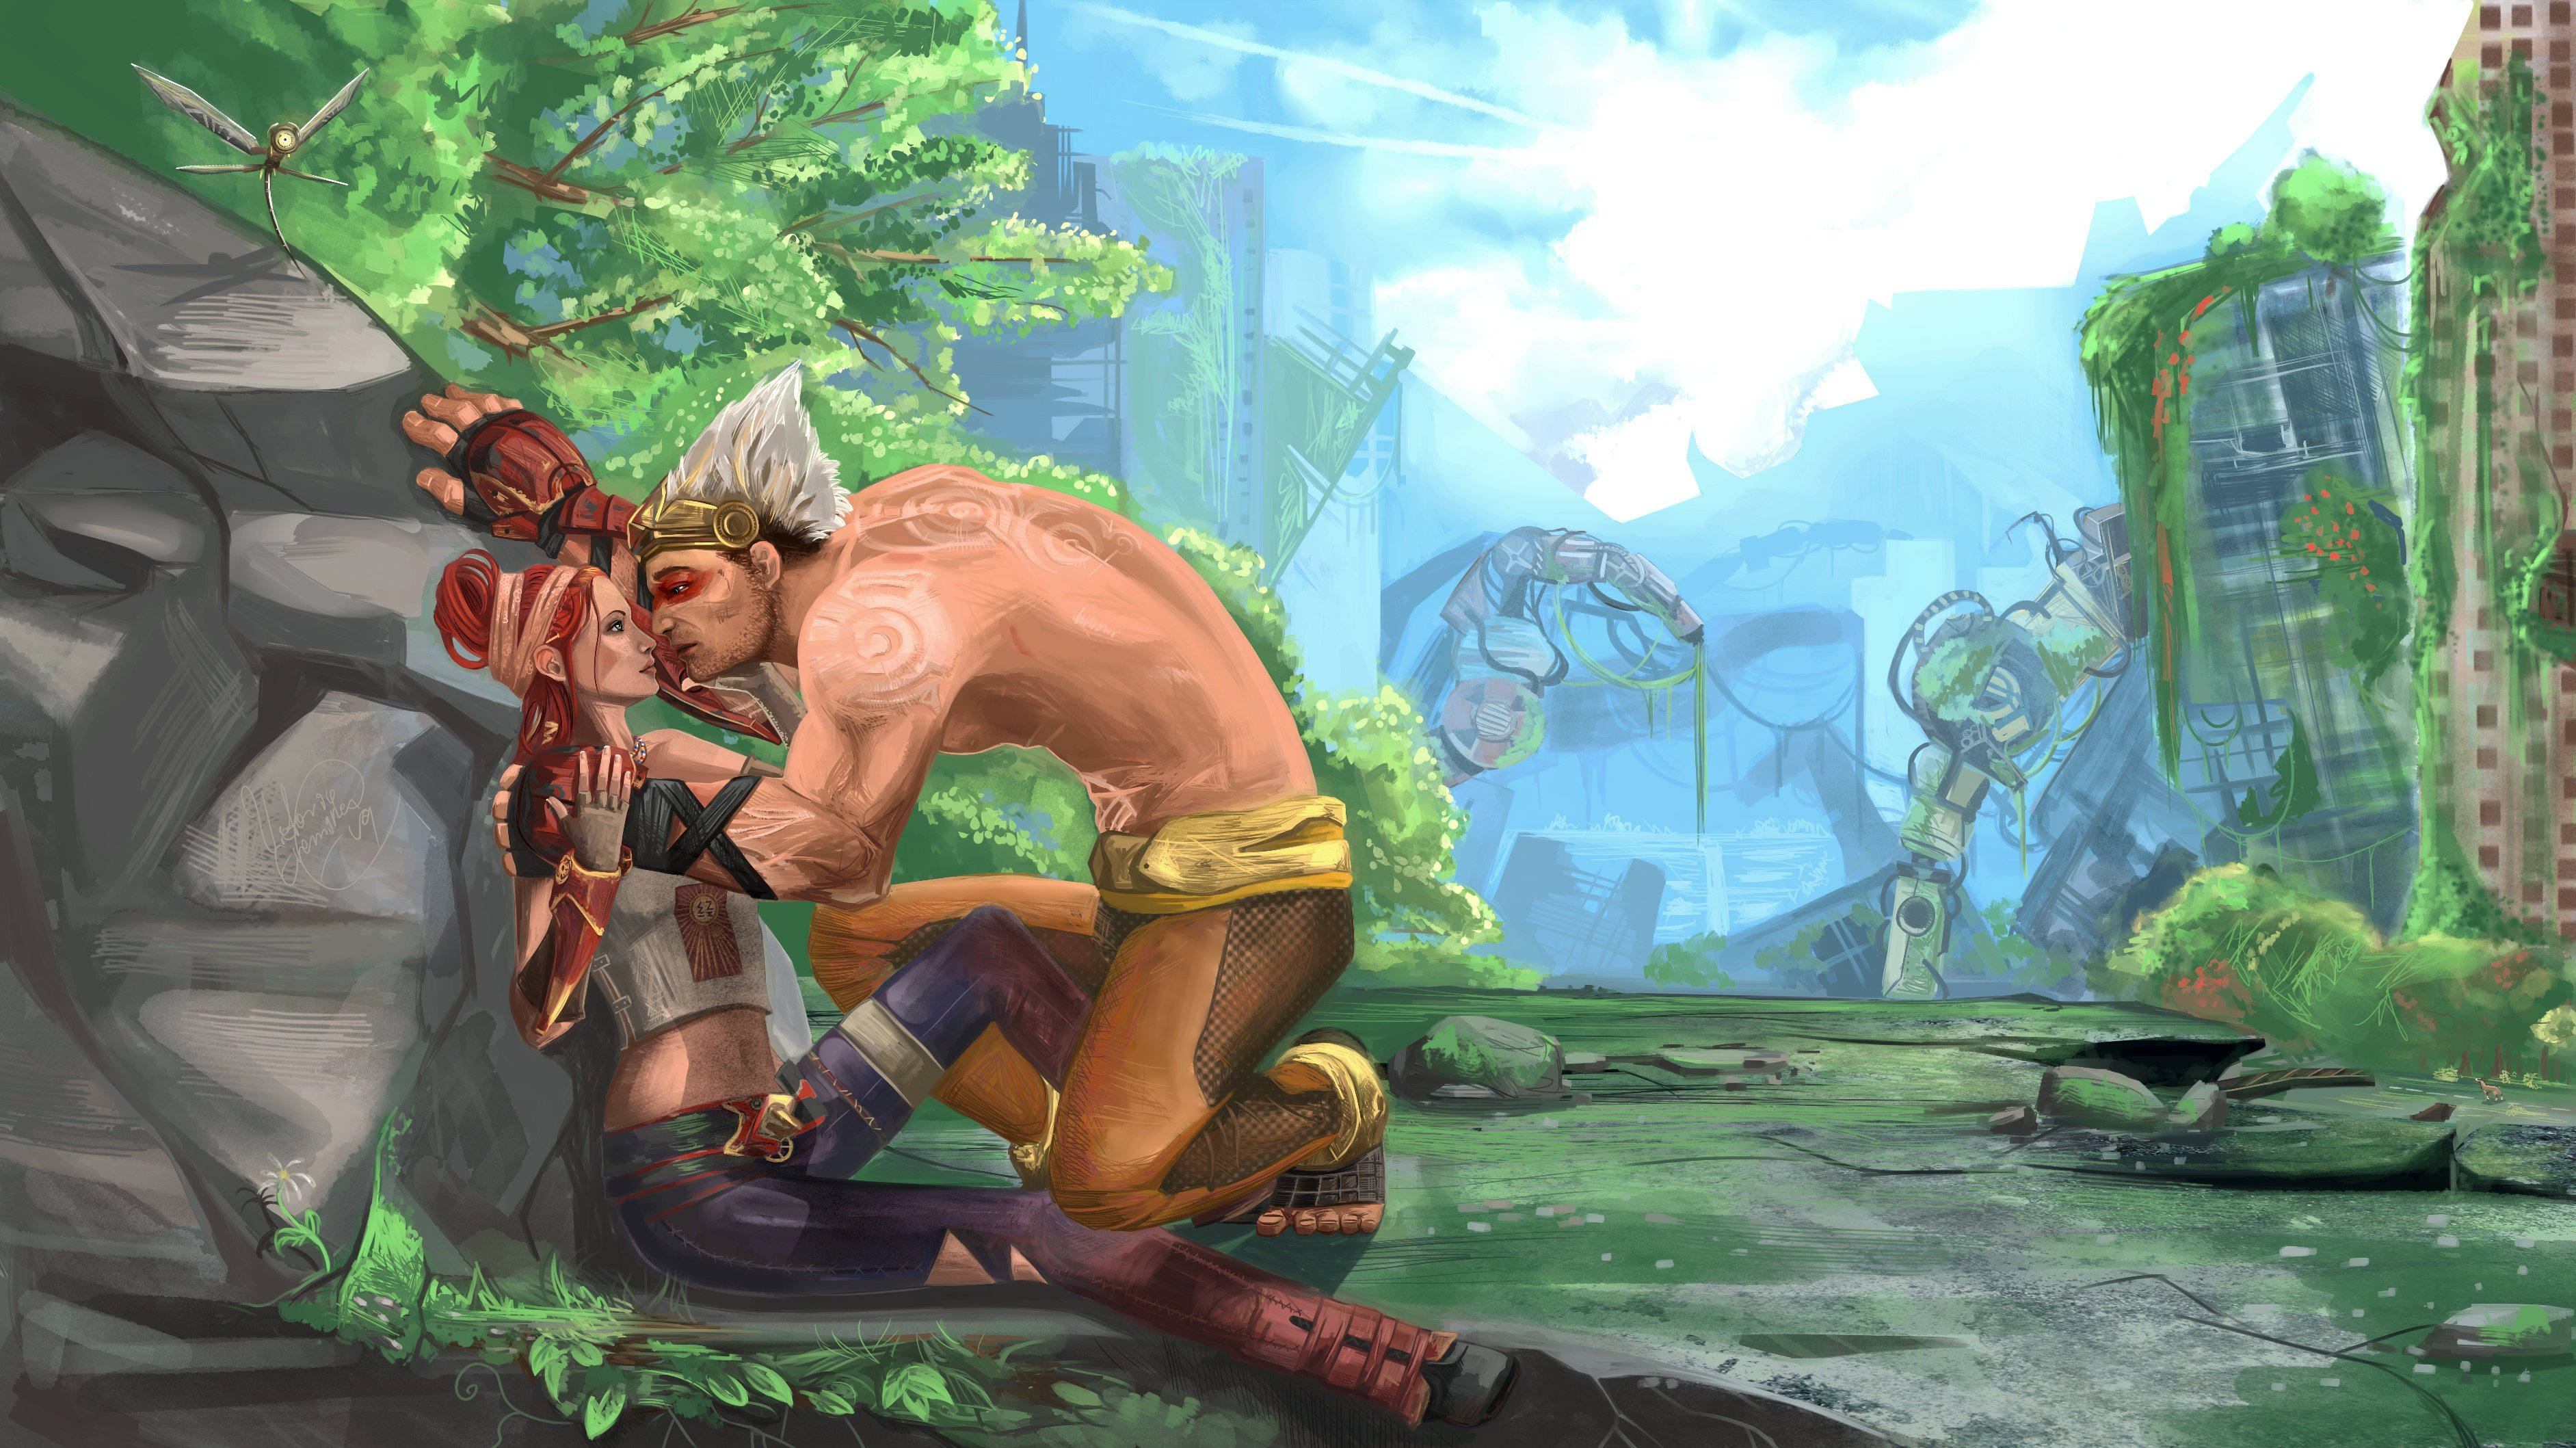 Enslaved odyssey to the west porn smut movie